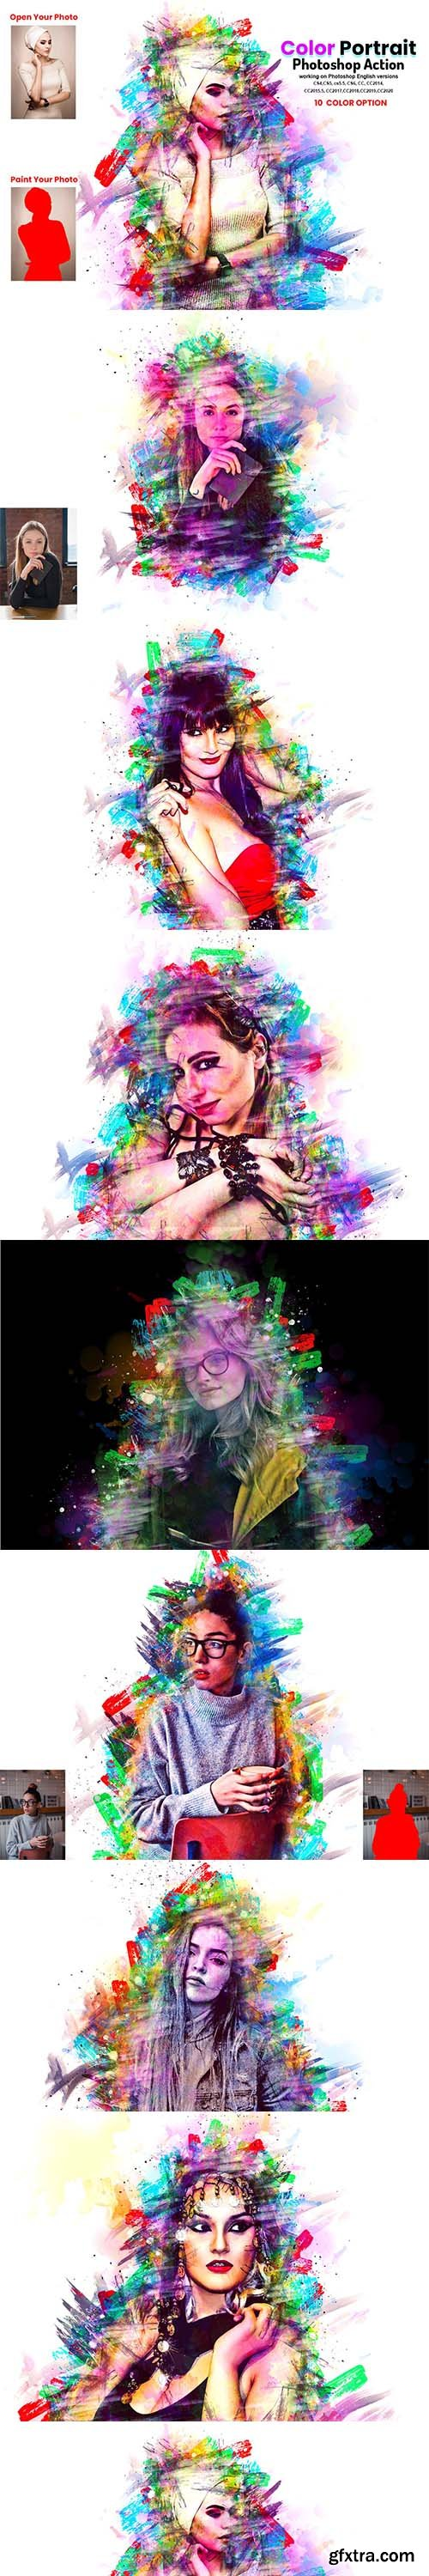 CreativeMarket - Color Portrait Photoshop Action 5919419